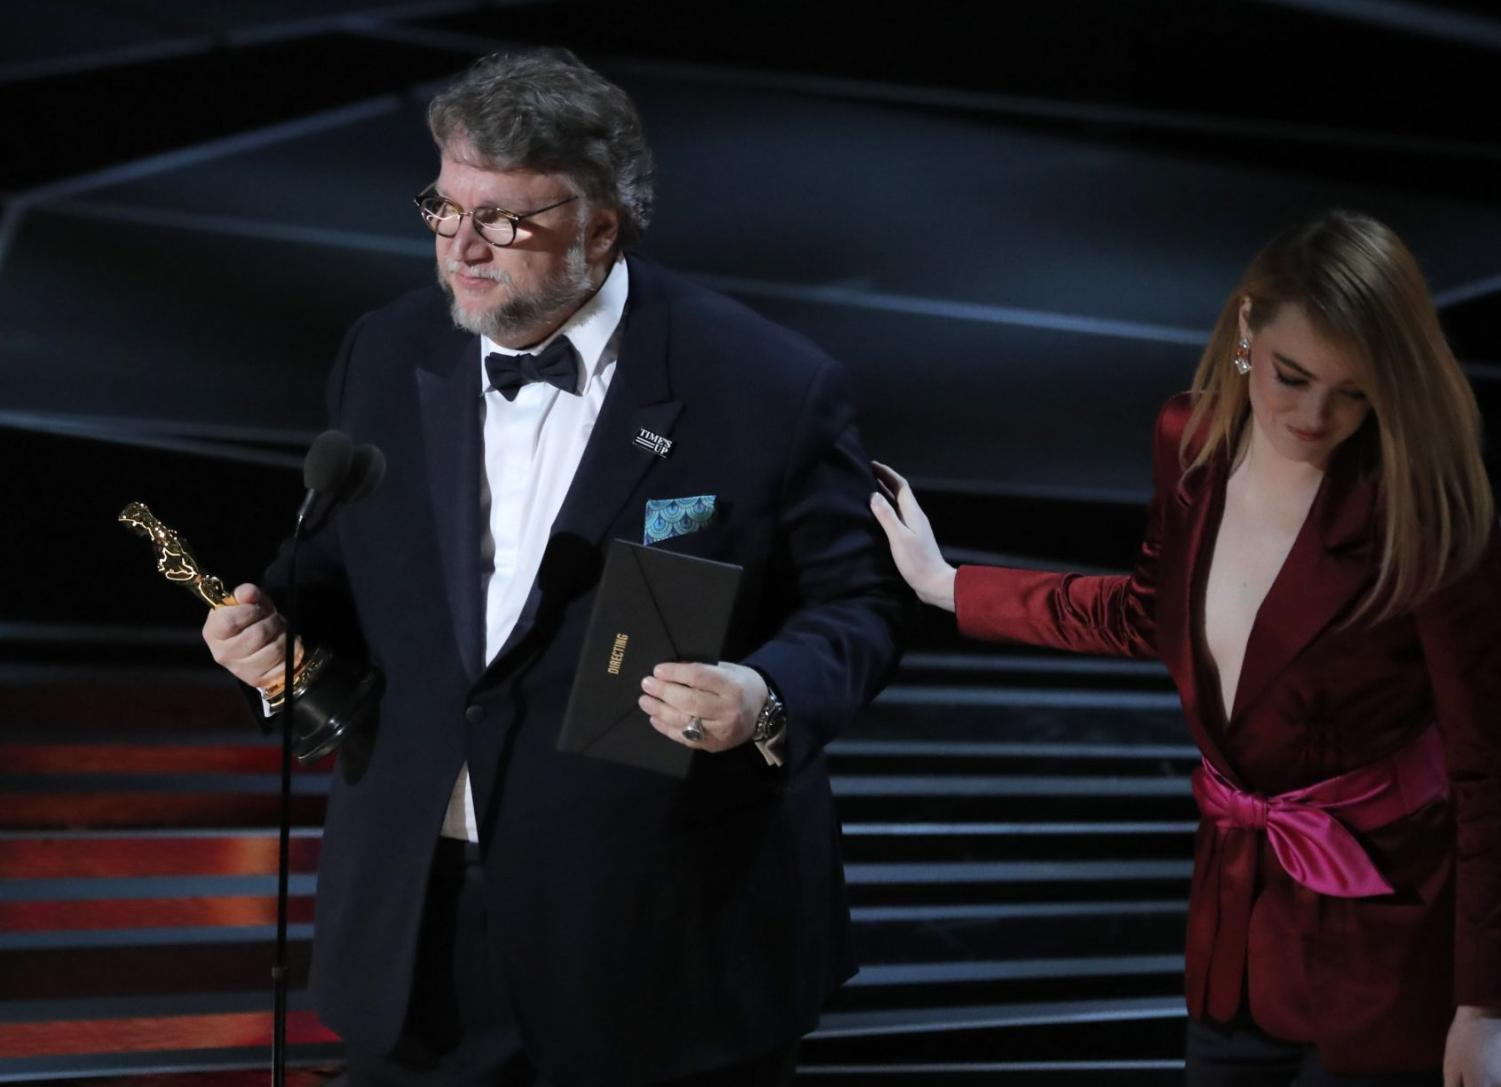 Guillermo Del Toro took home numerous Oscars for